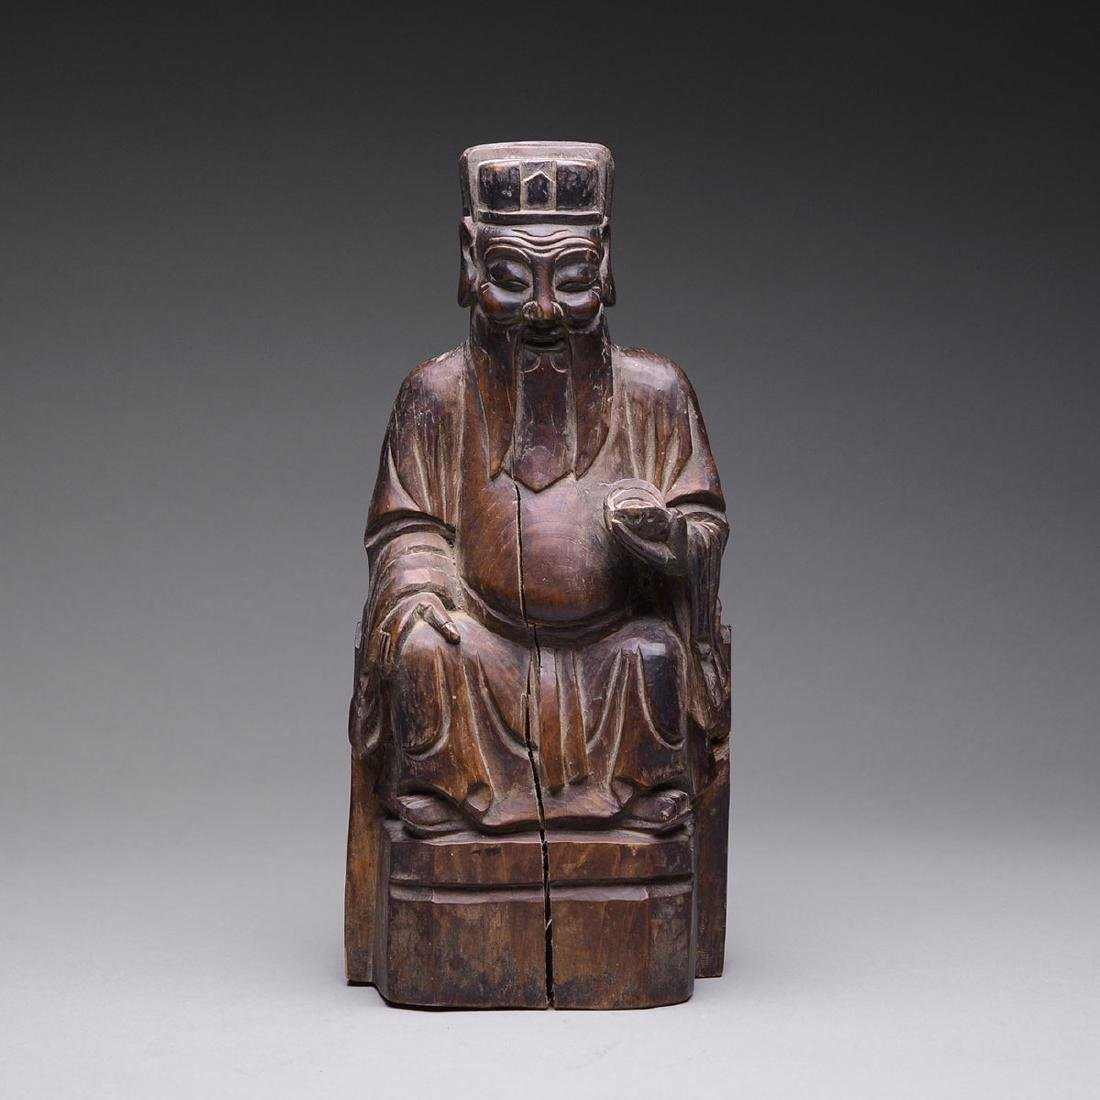 Qing Sculpture of a Taoist Deity